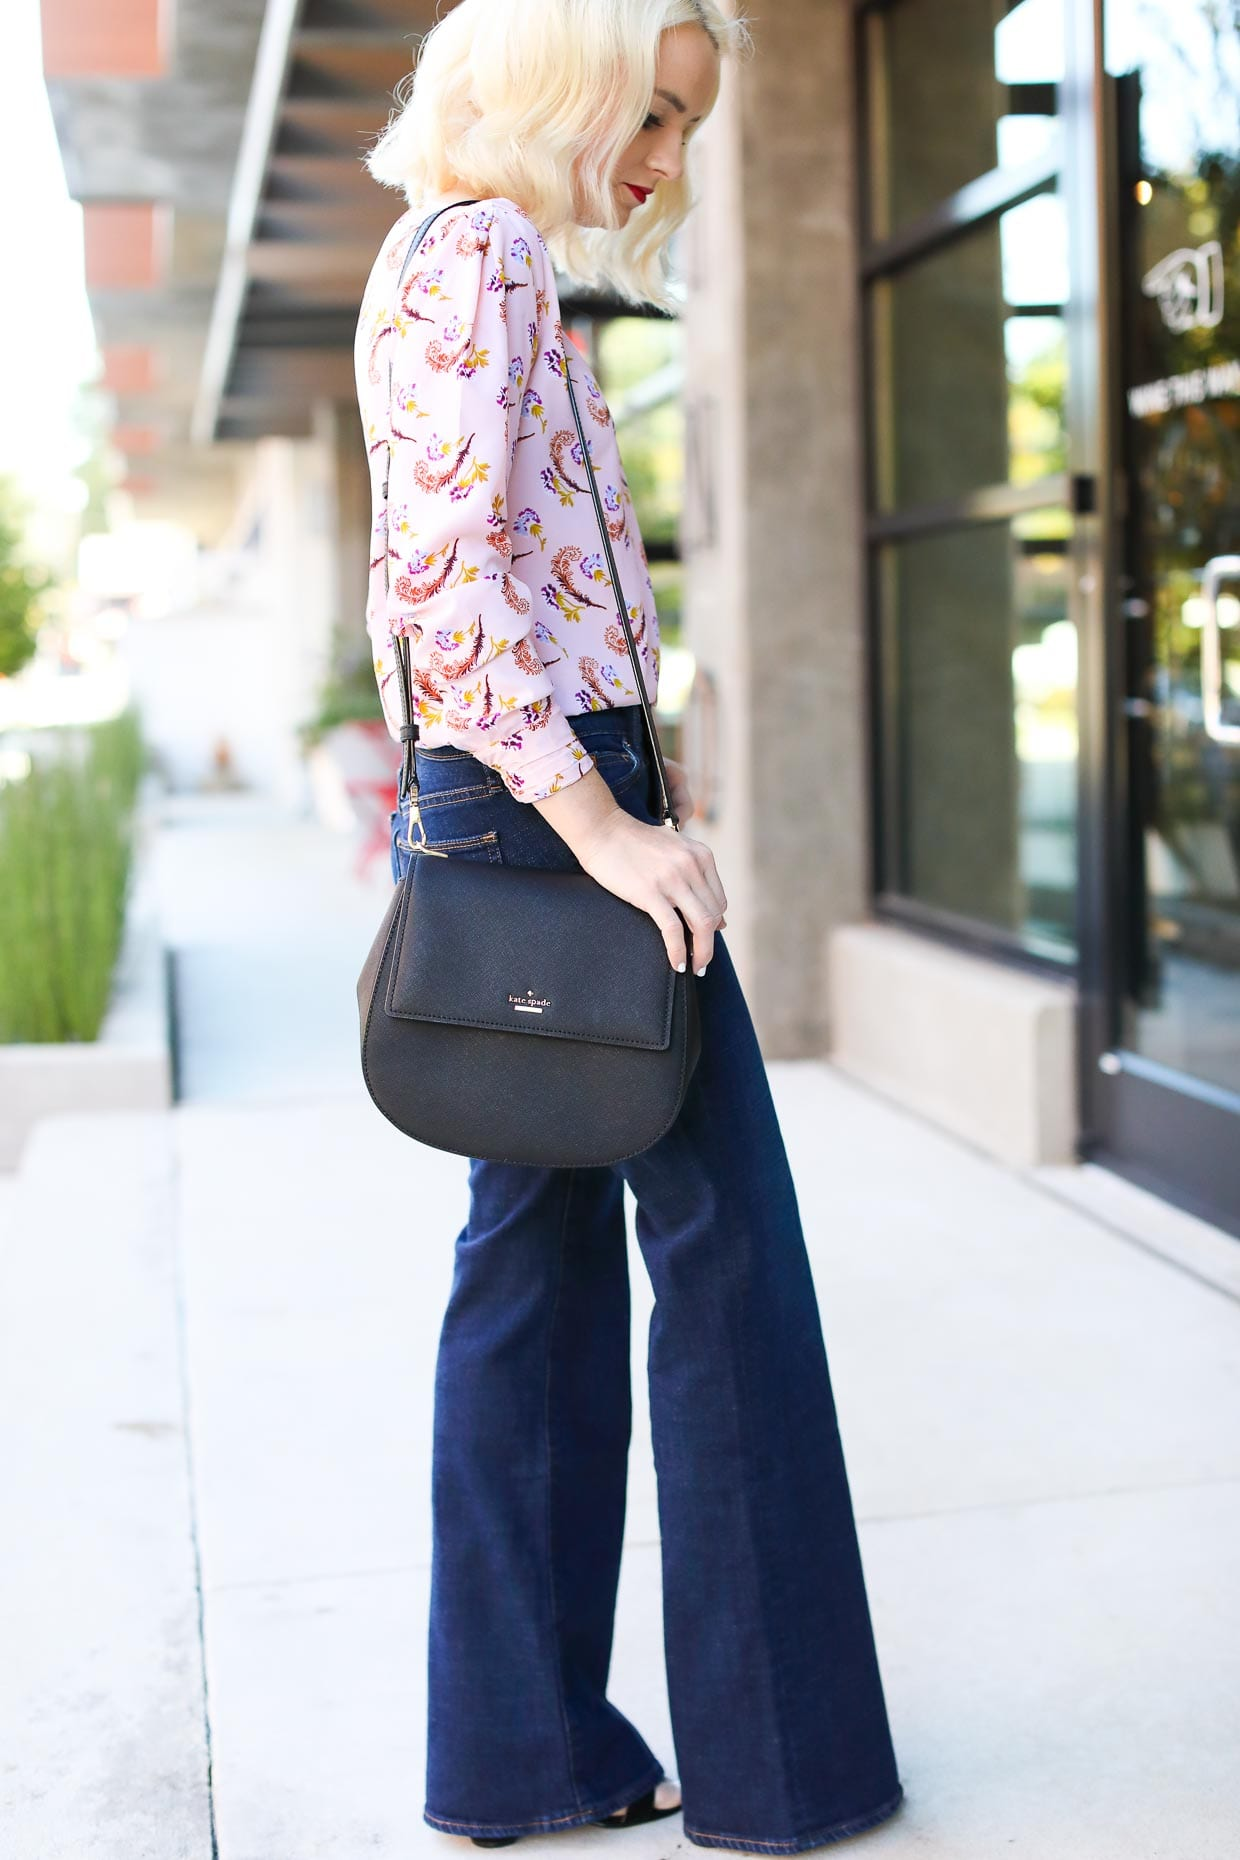 Gap Flare Jeans Styled for Fall - Poor Little It Girl